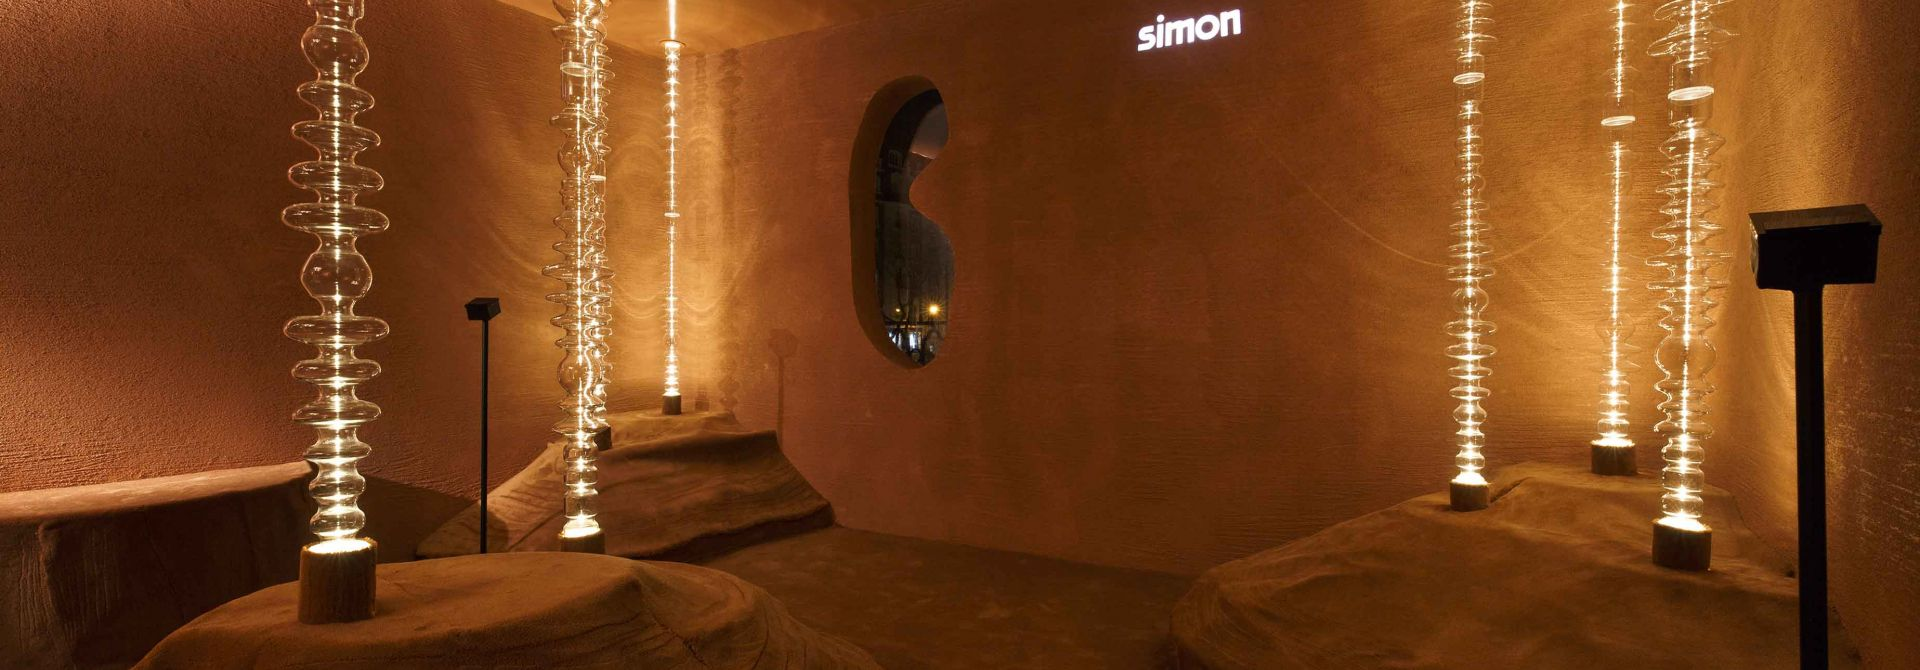 casadecor 2019 simon